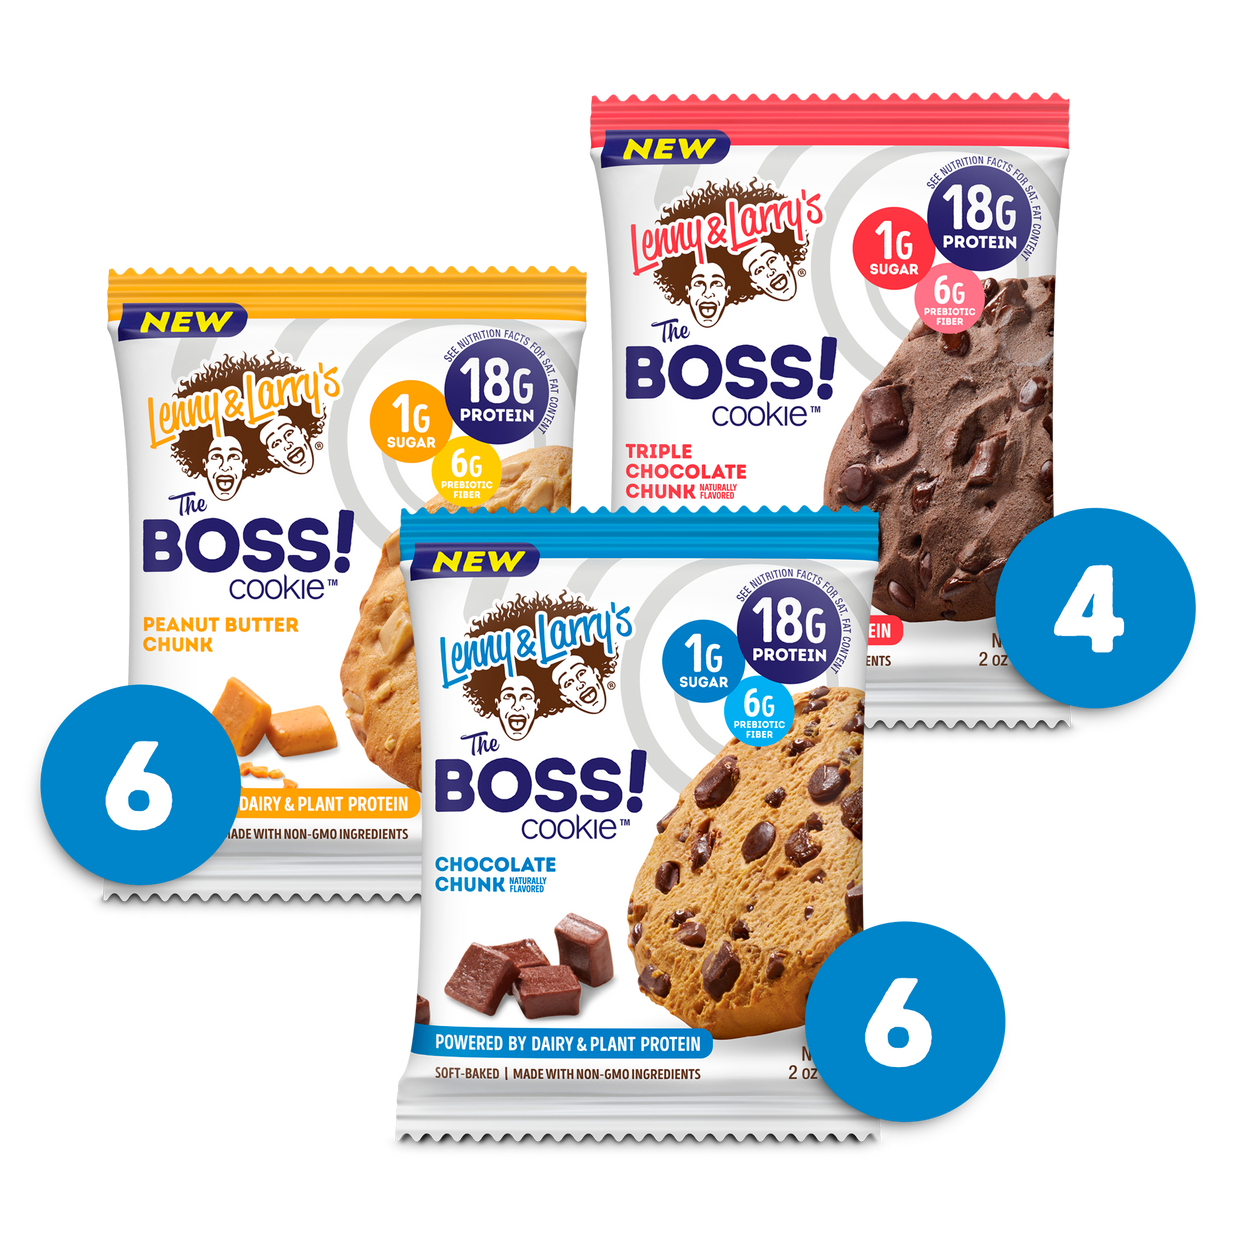 The BOSS! Cookie Variety Pack